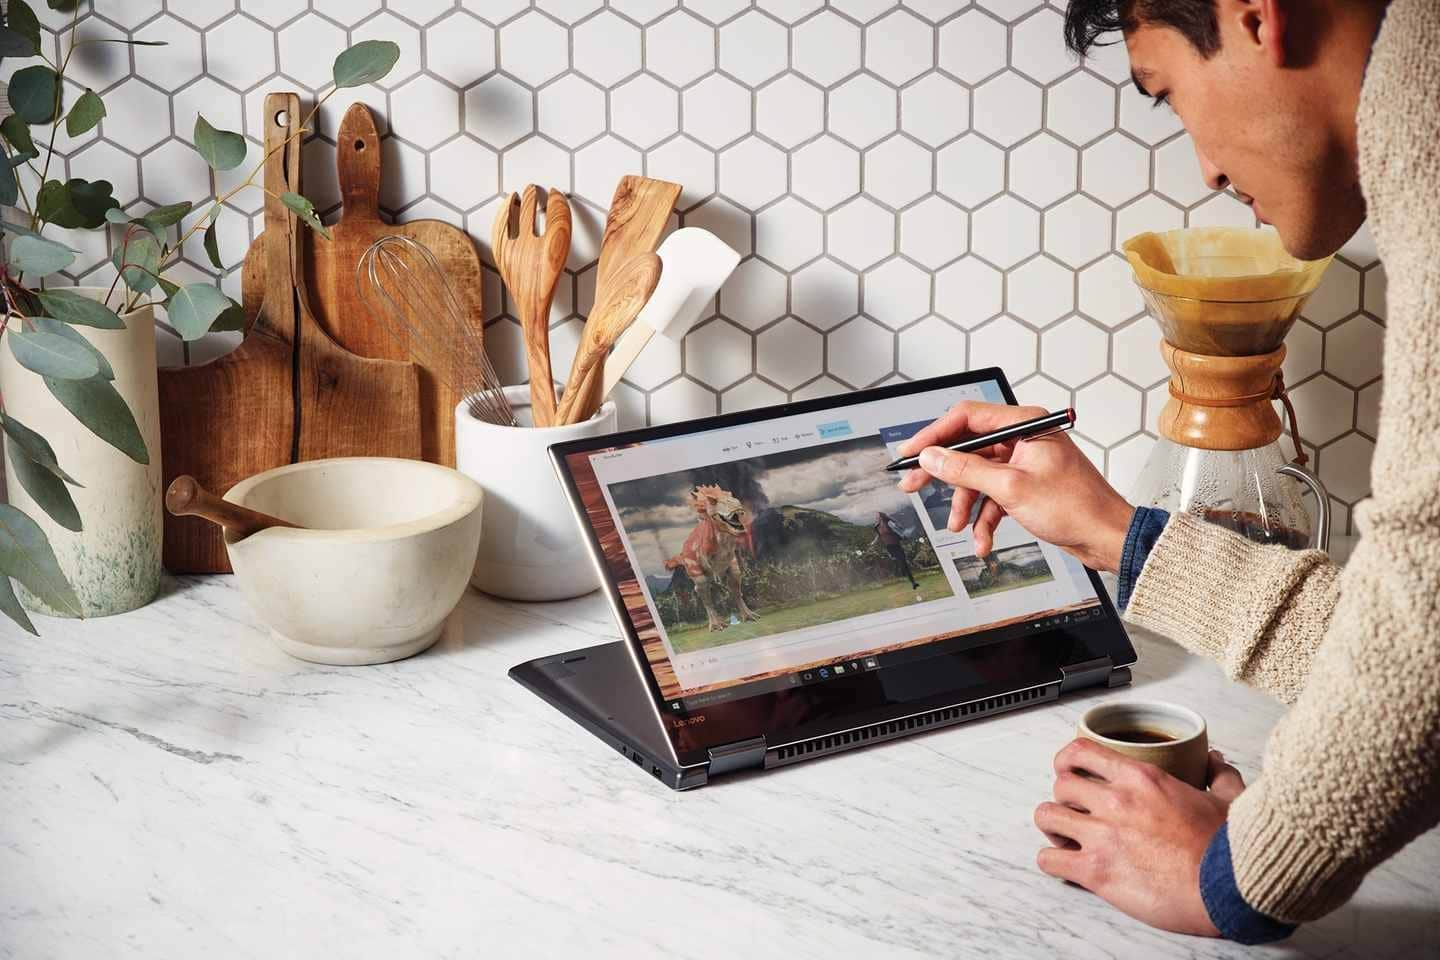 Windows 10 Fall Creators Update Will Hit The World On October 17th